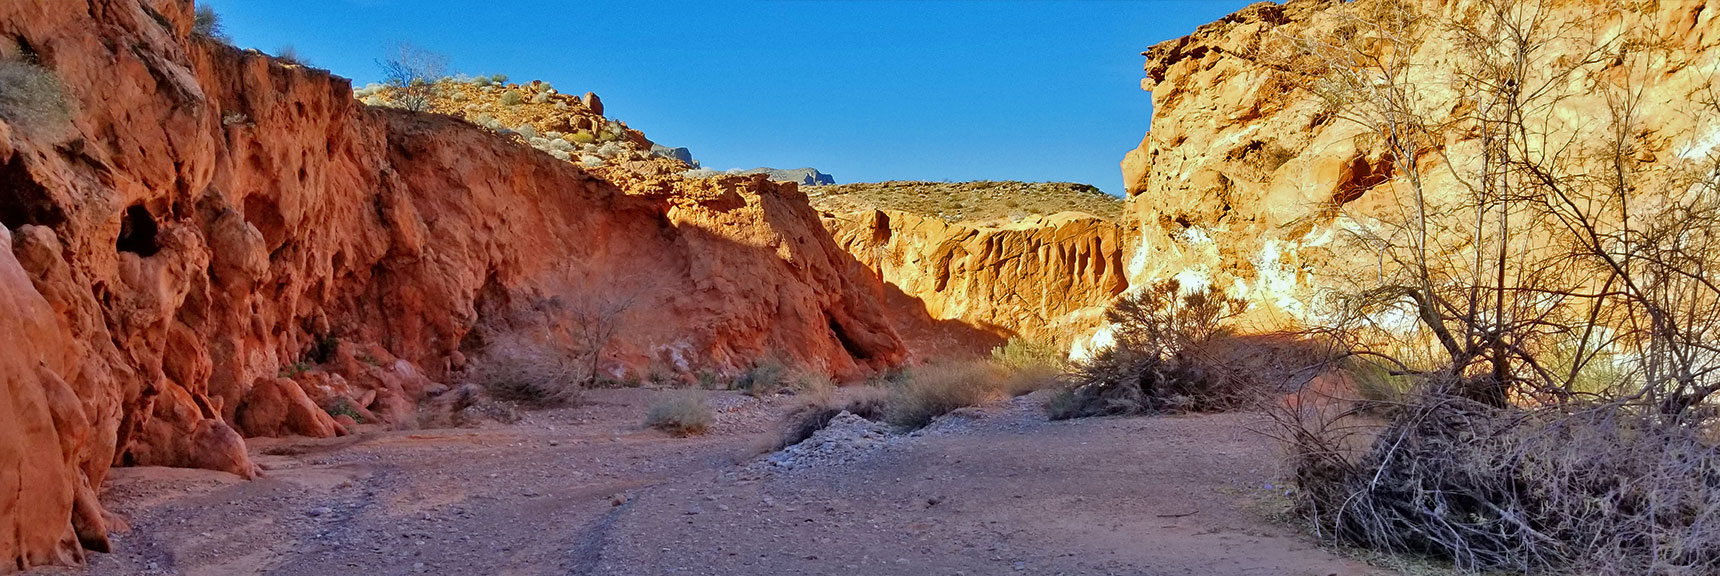 Navigating the Red Rock Canyon on Charlie's Spring Trail, Valley of Fire State Park, Nevada